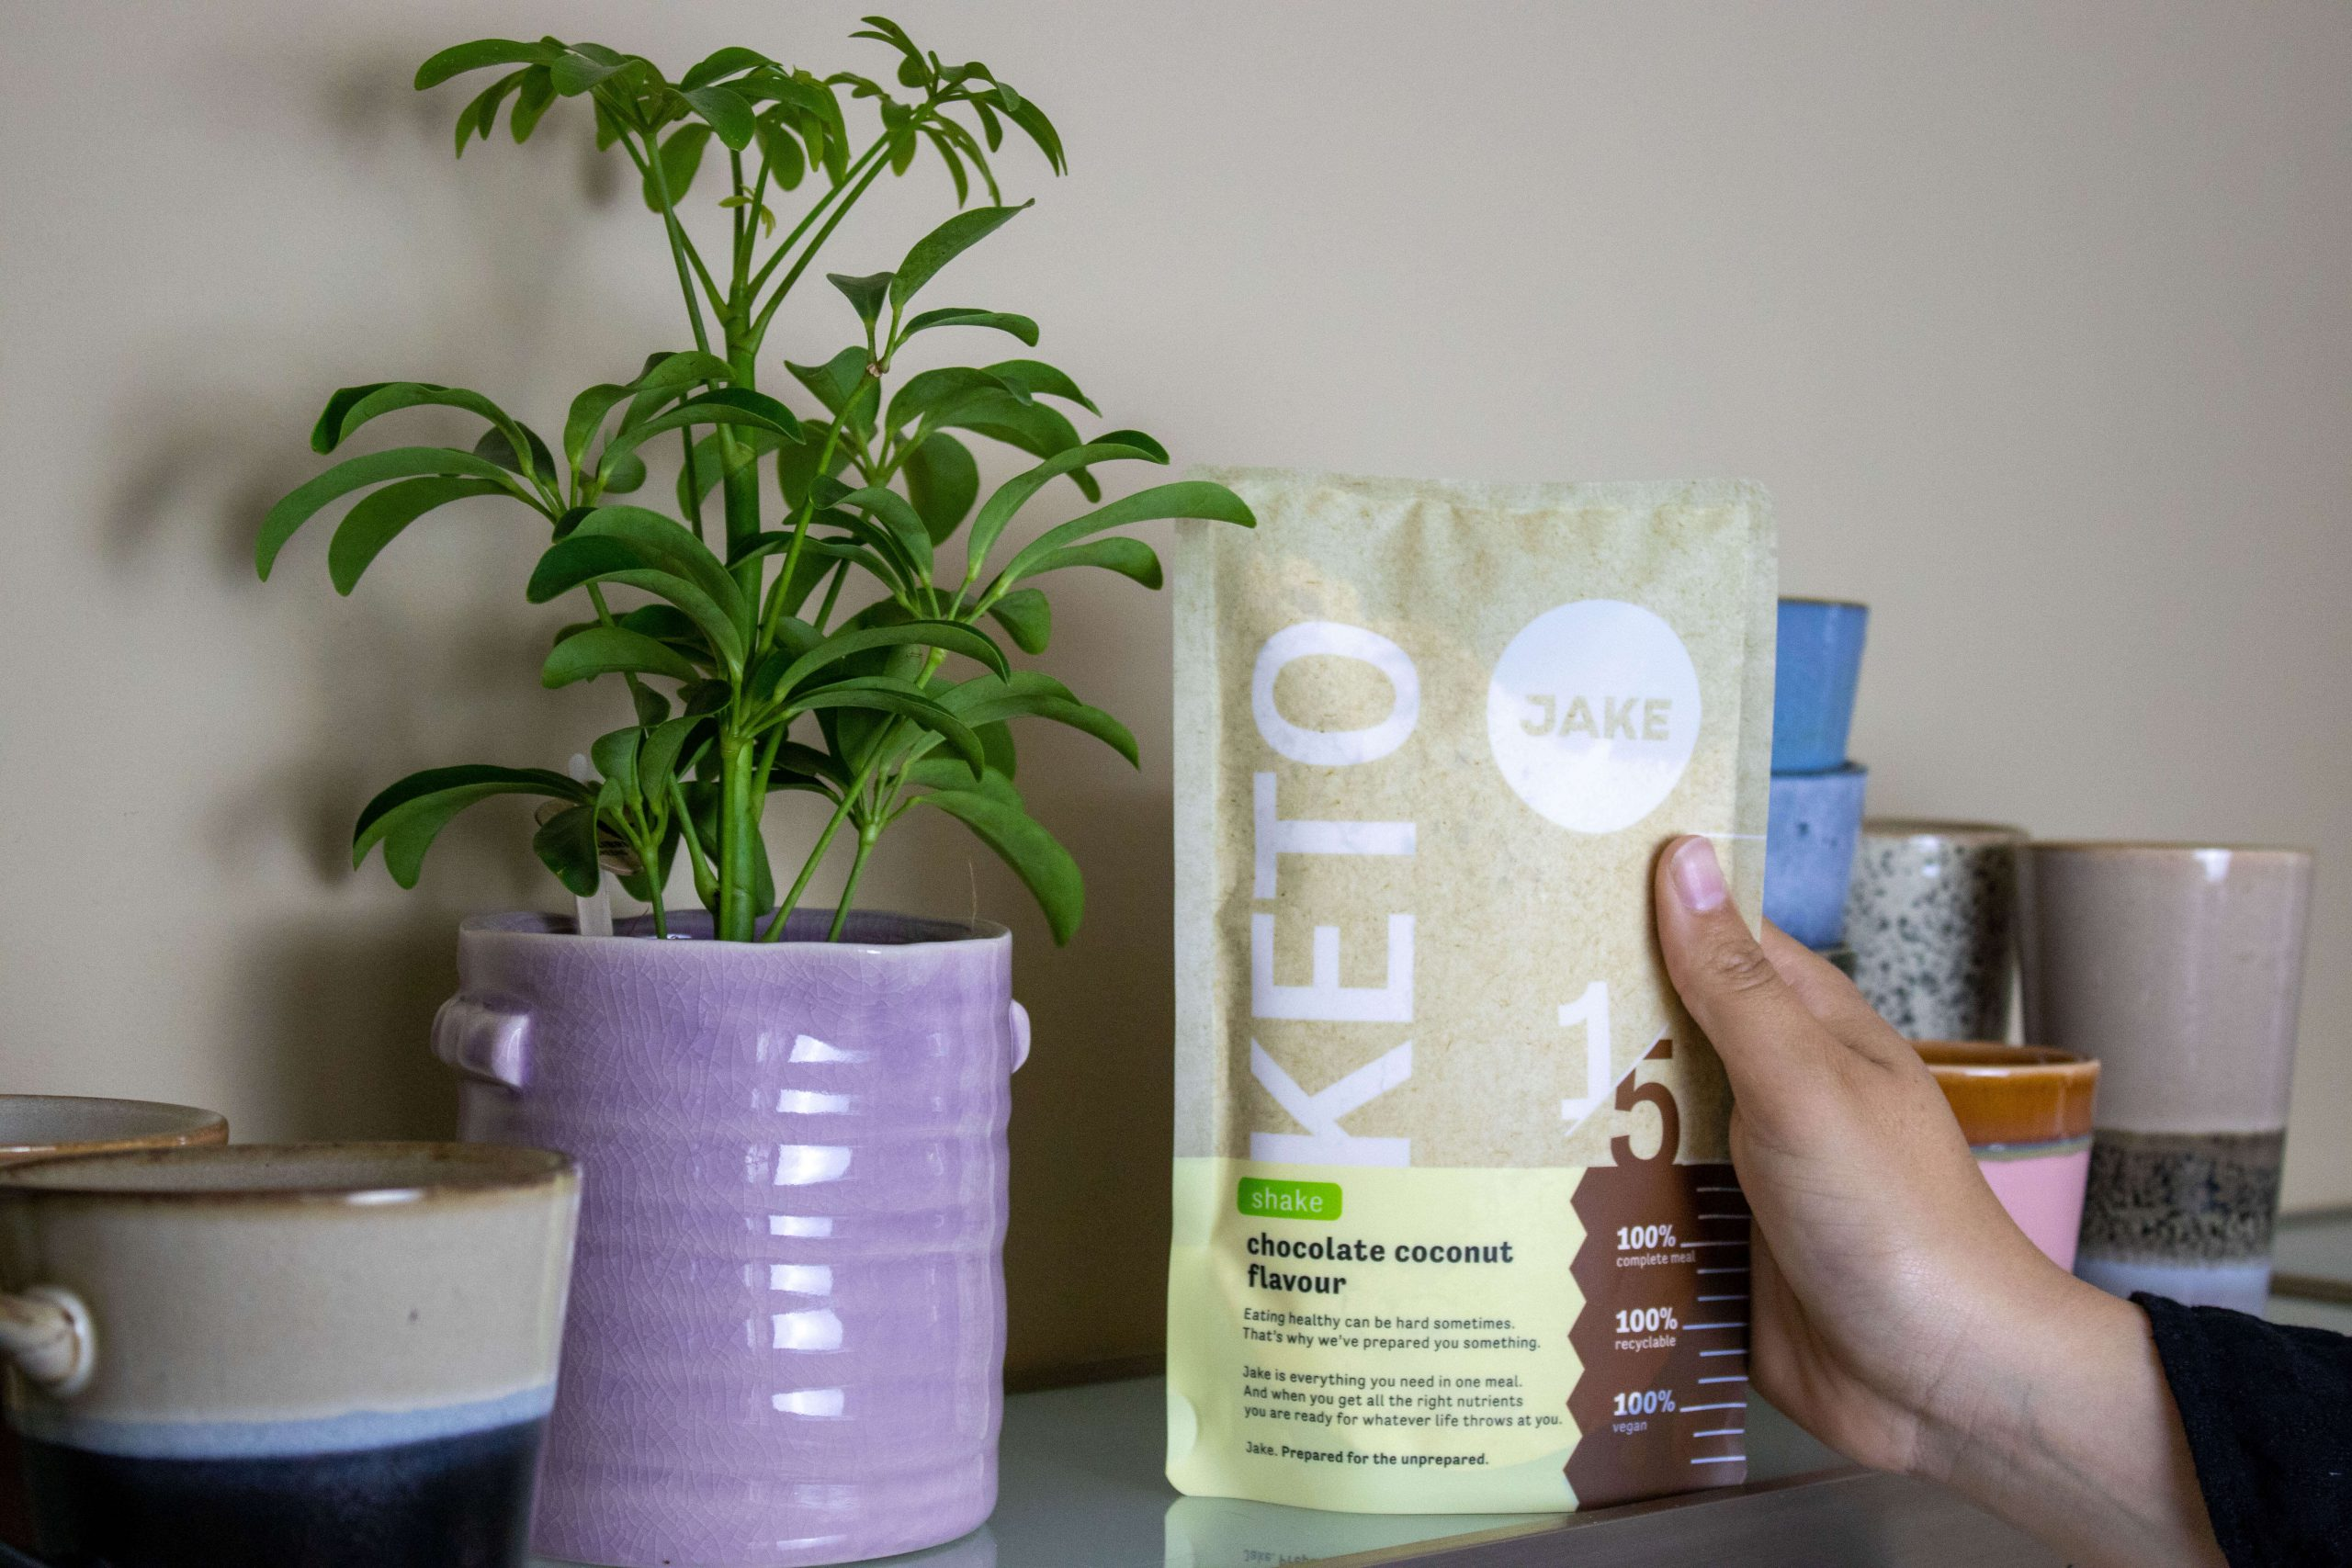 Keto shake by Jake next to a plant and coffee cups